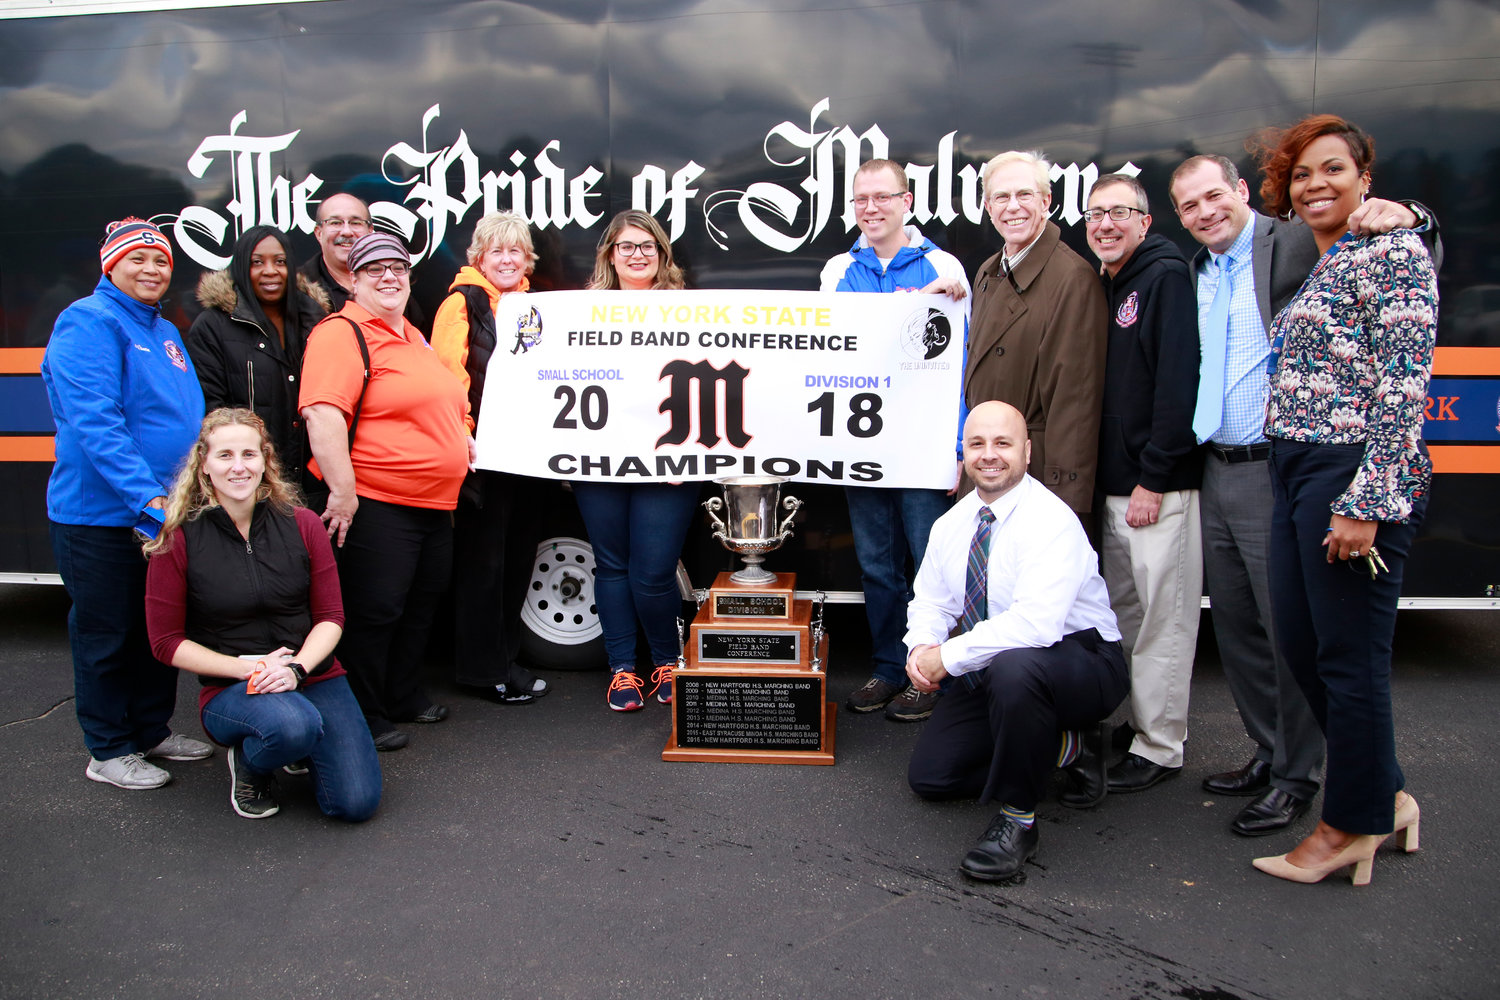 Malverne's marching band won their fourth championship in the last 12 years.